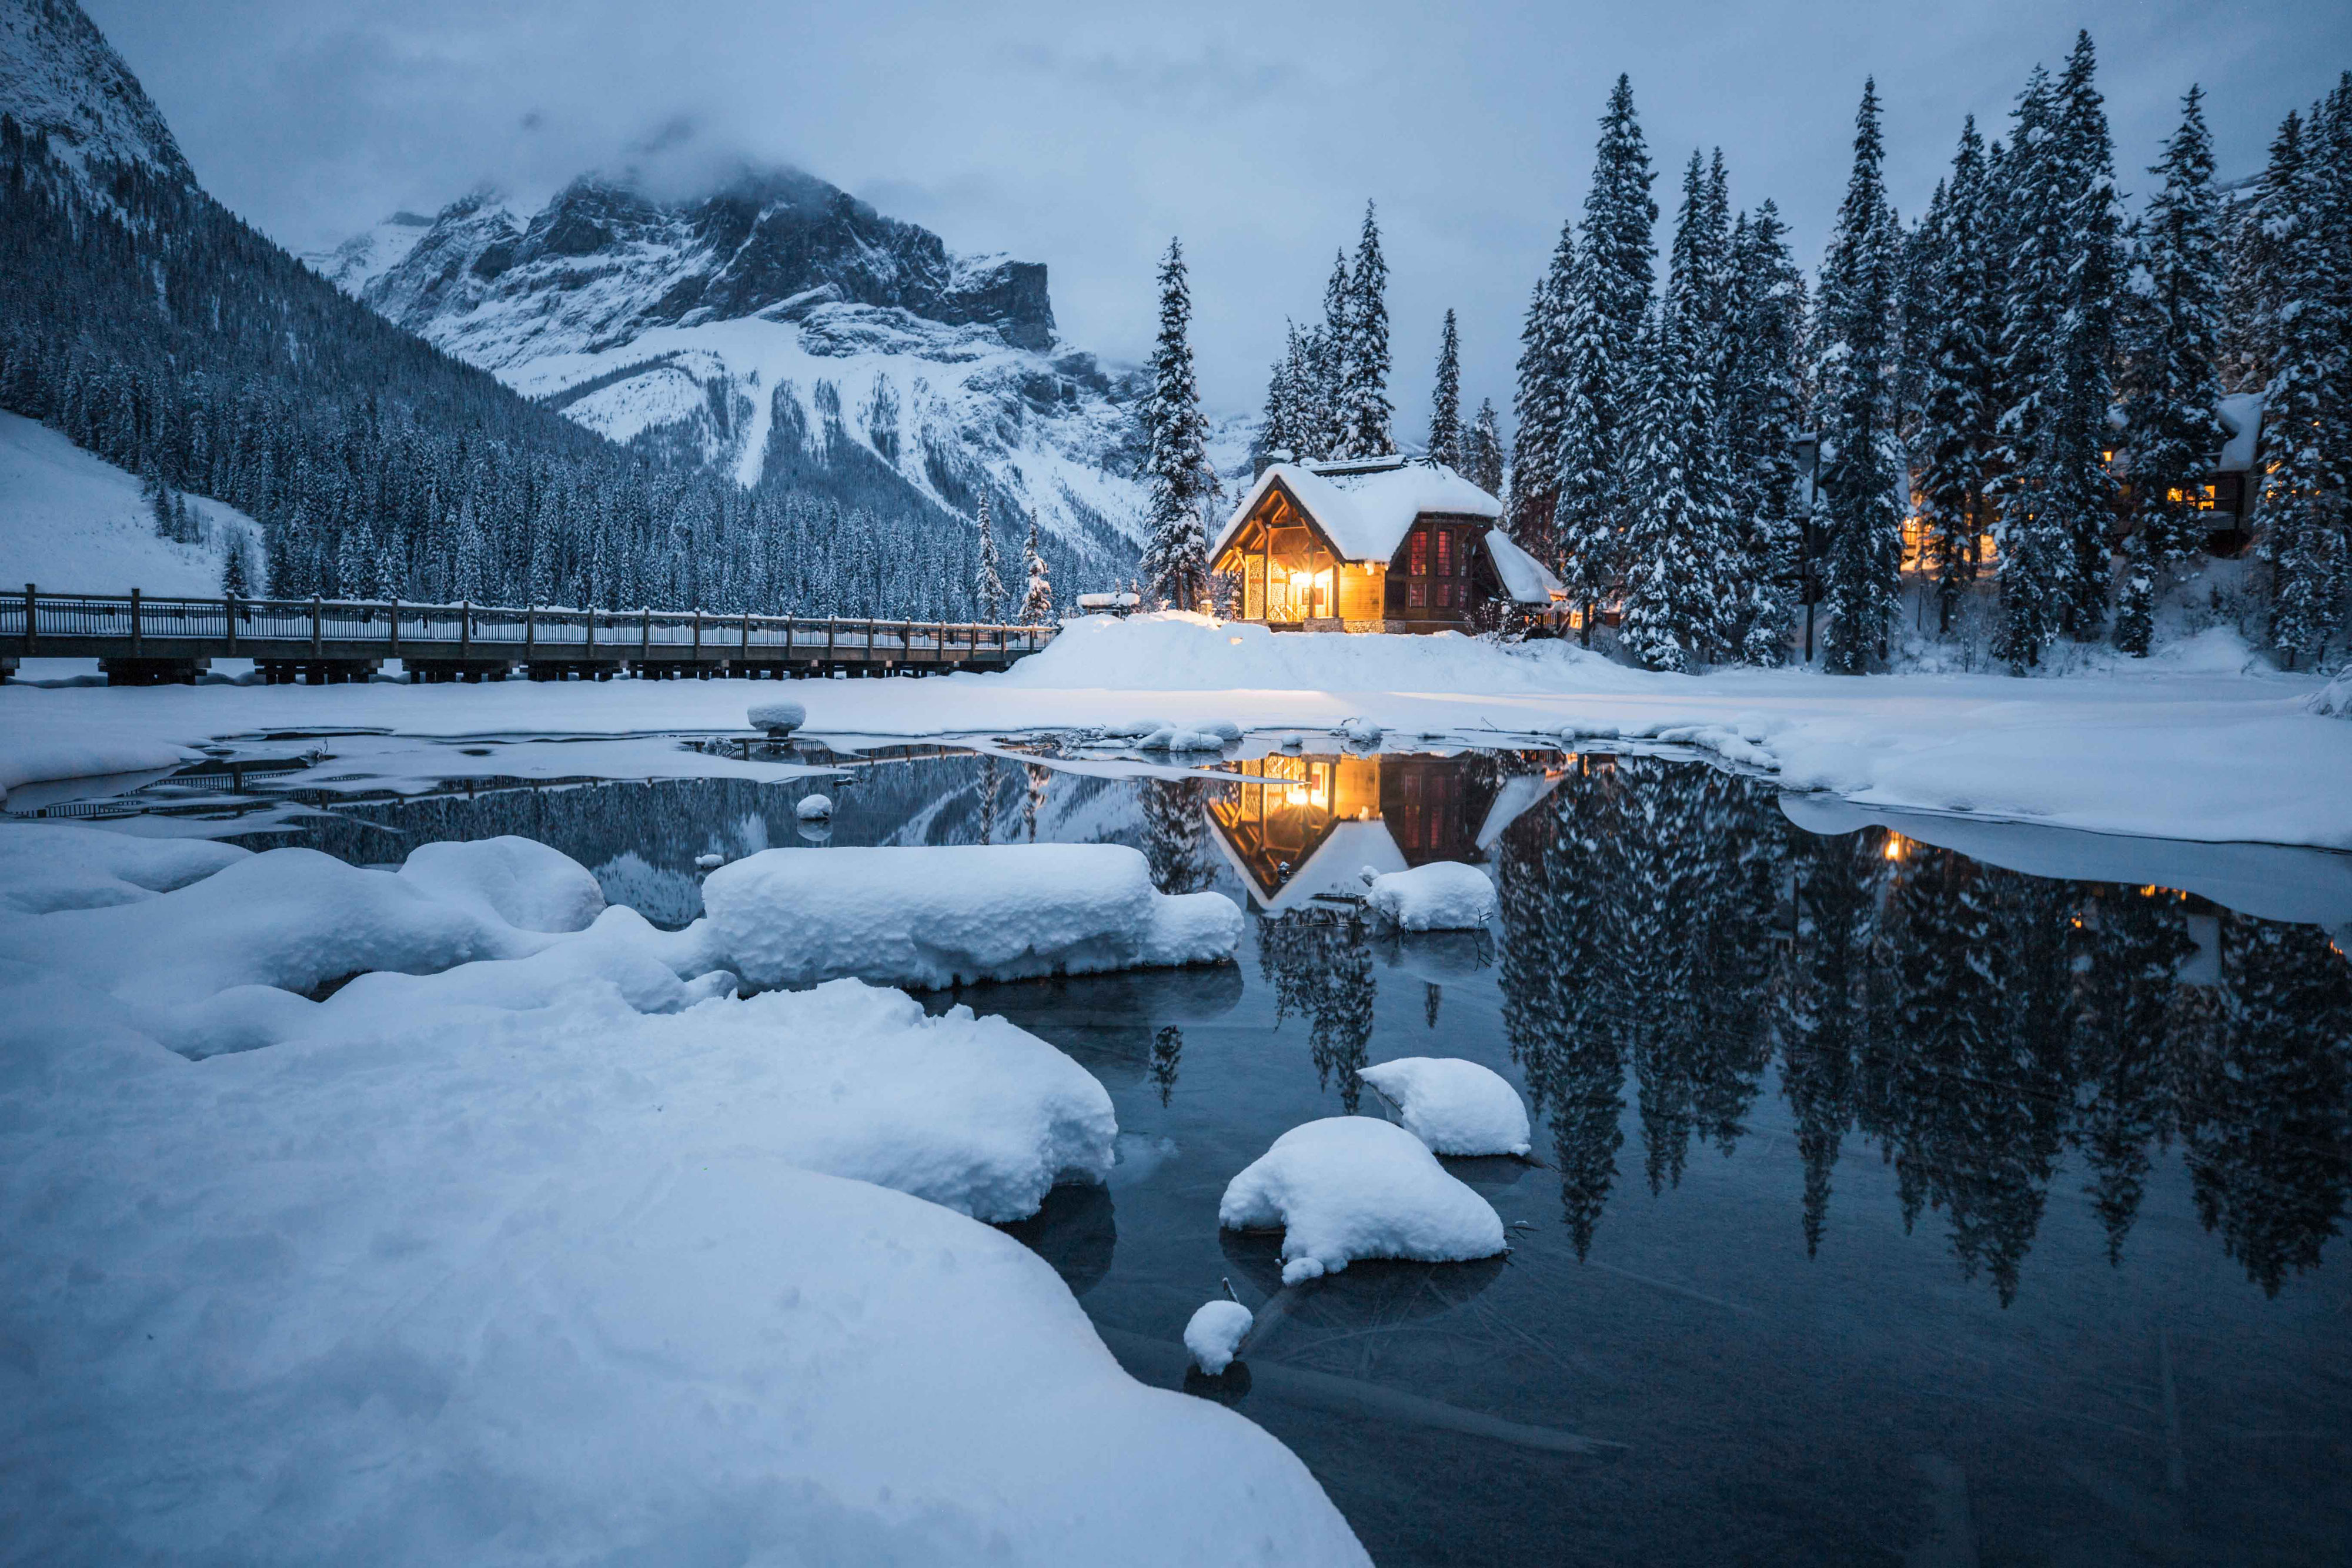 12 Things You Should Know About Traveling To The Canadian Rockies In